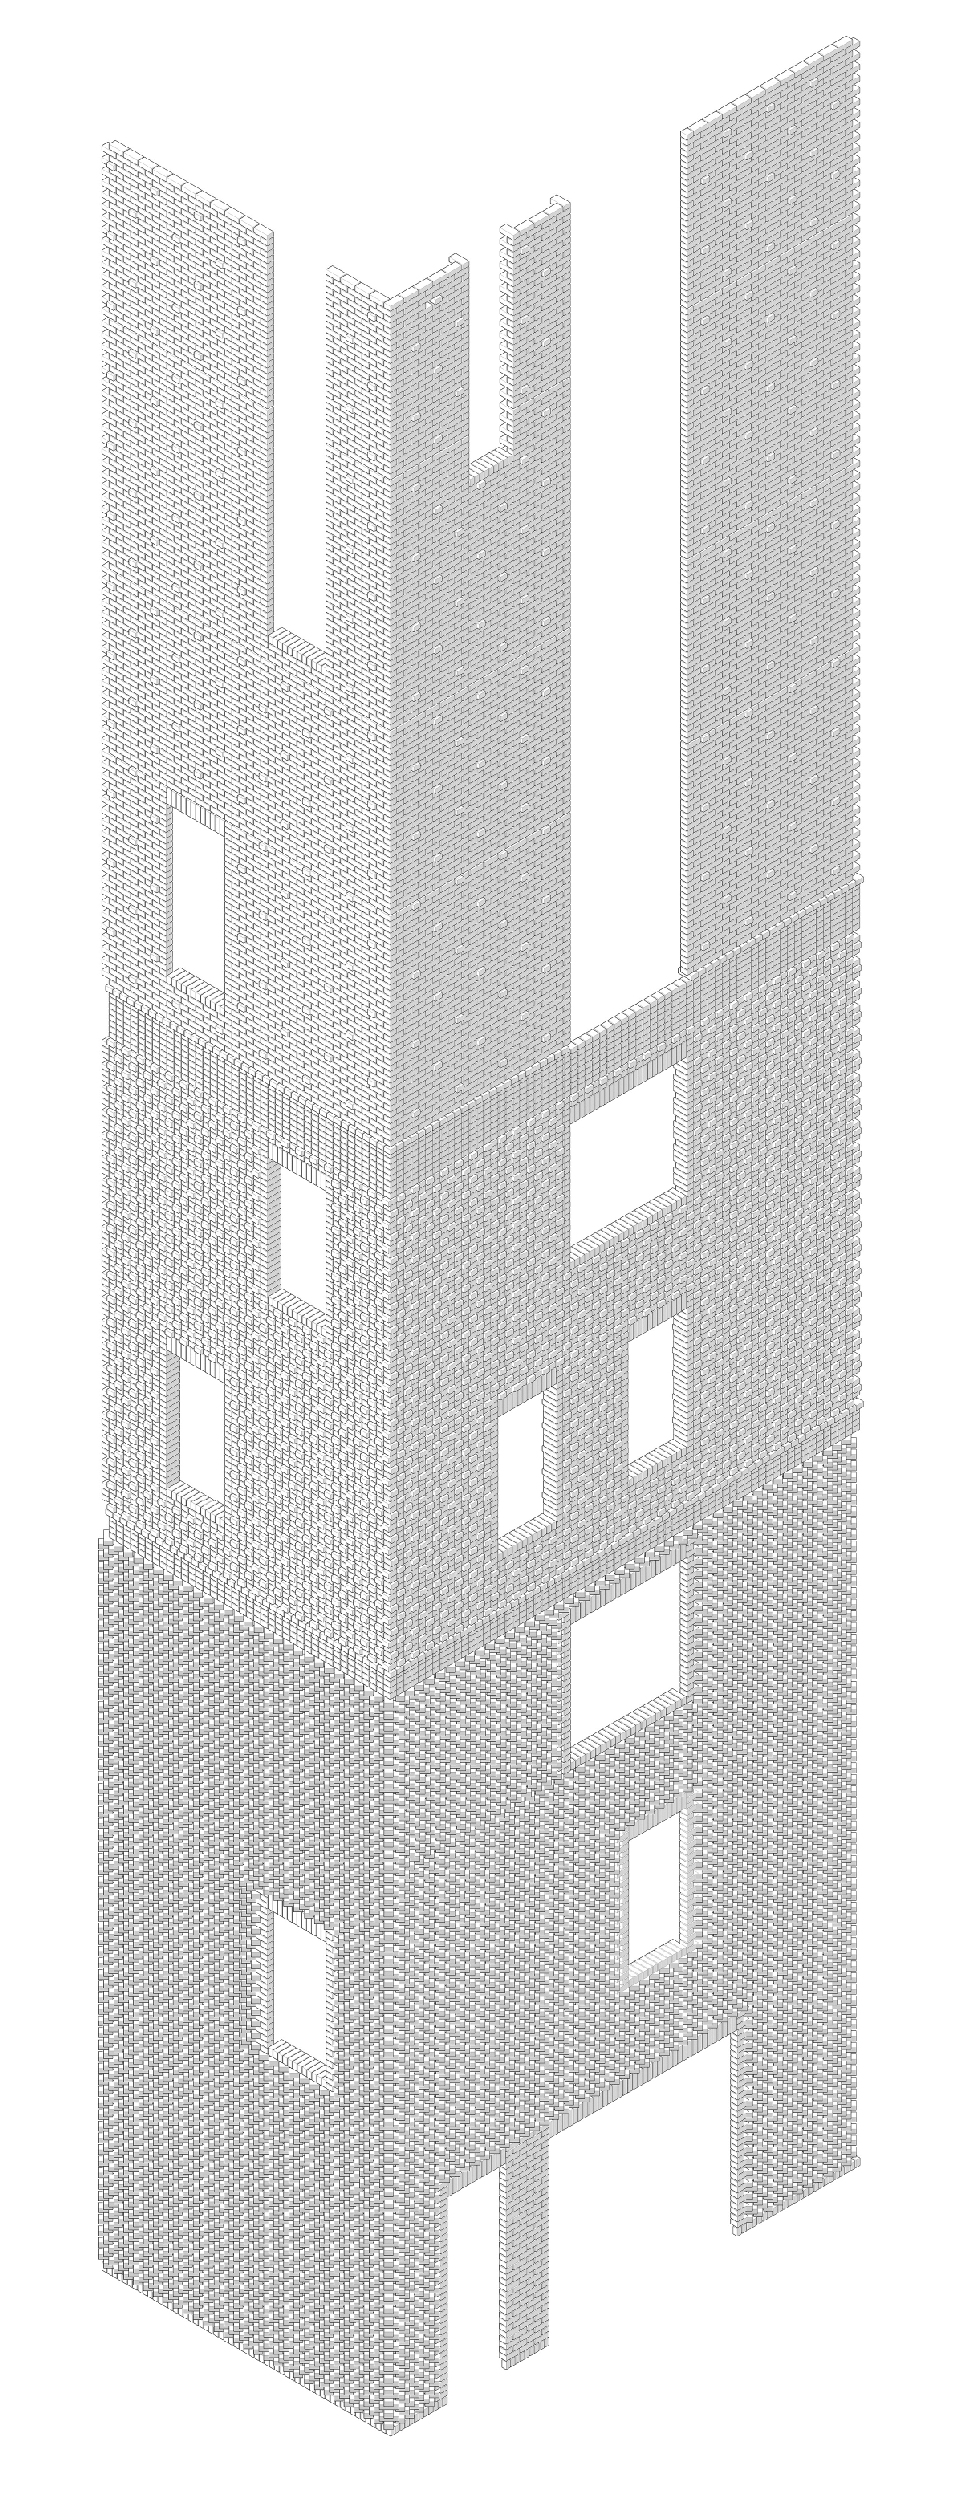 Edison House. Axonometric drawing of the brickwork<br>Copyright: © Aleksey Bavykin and Partners